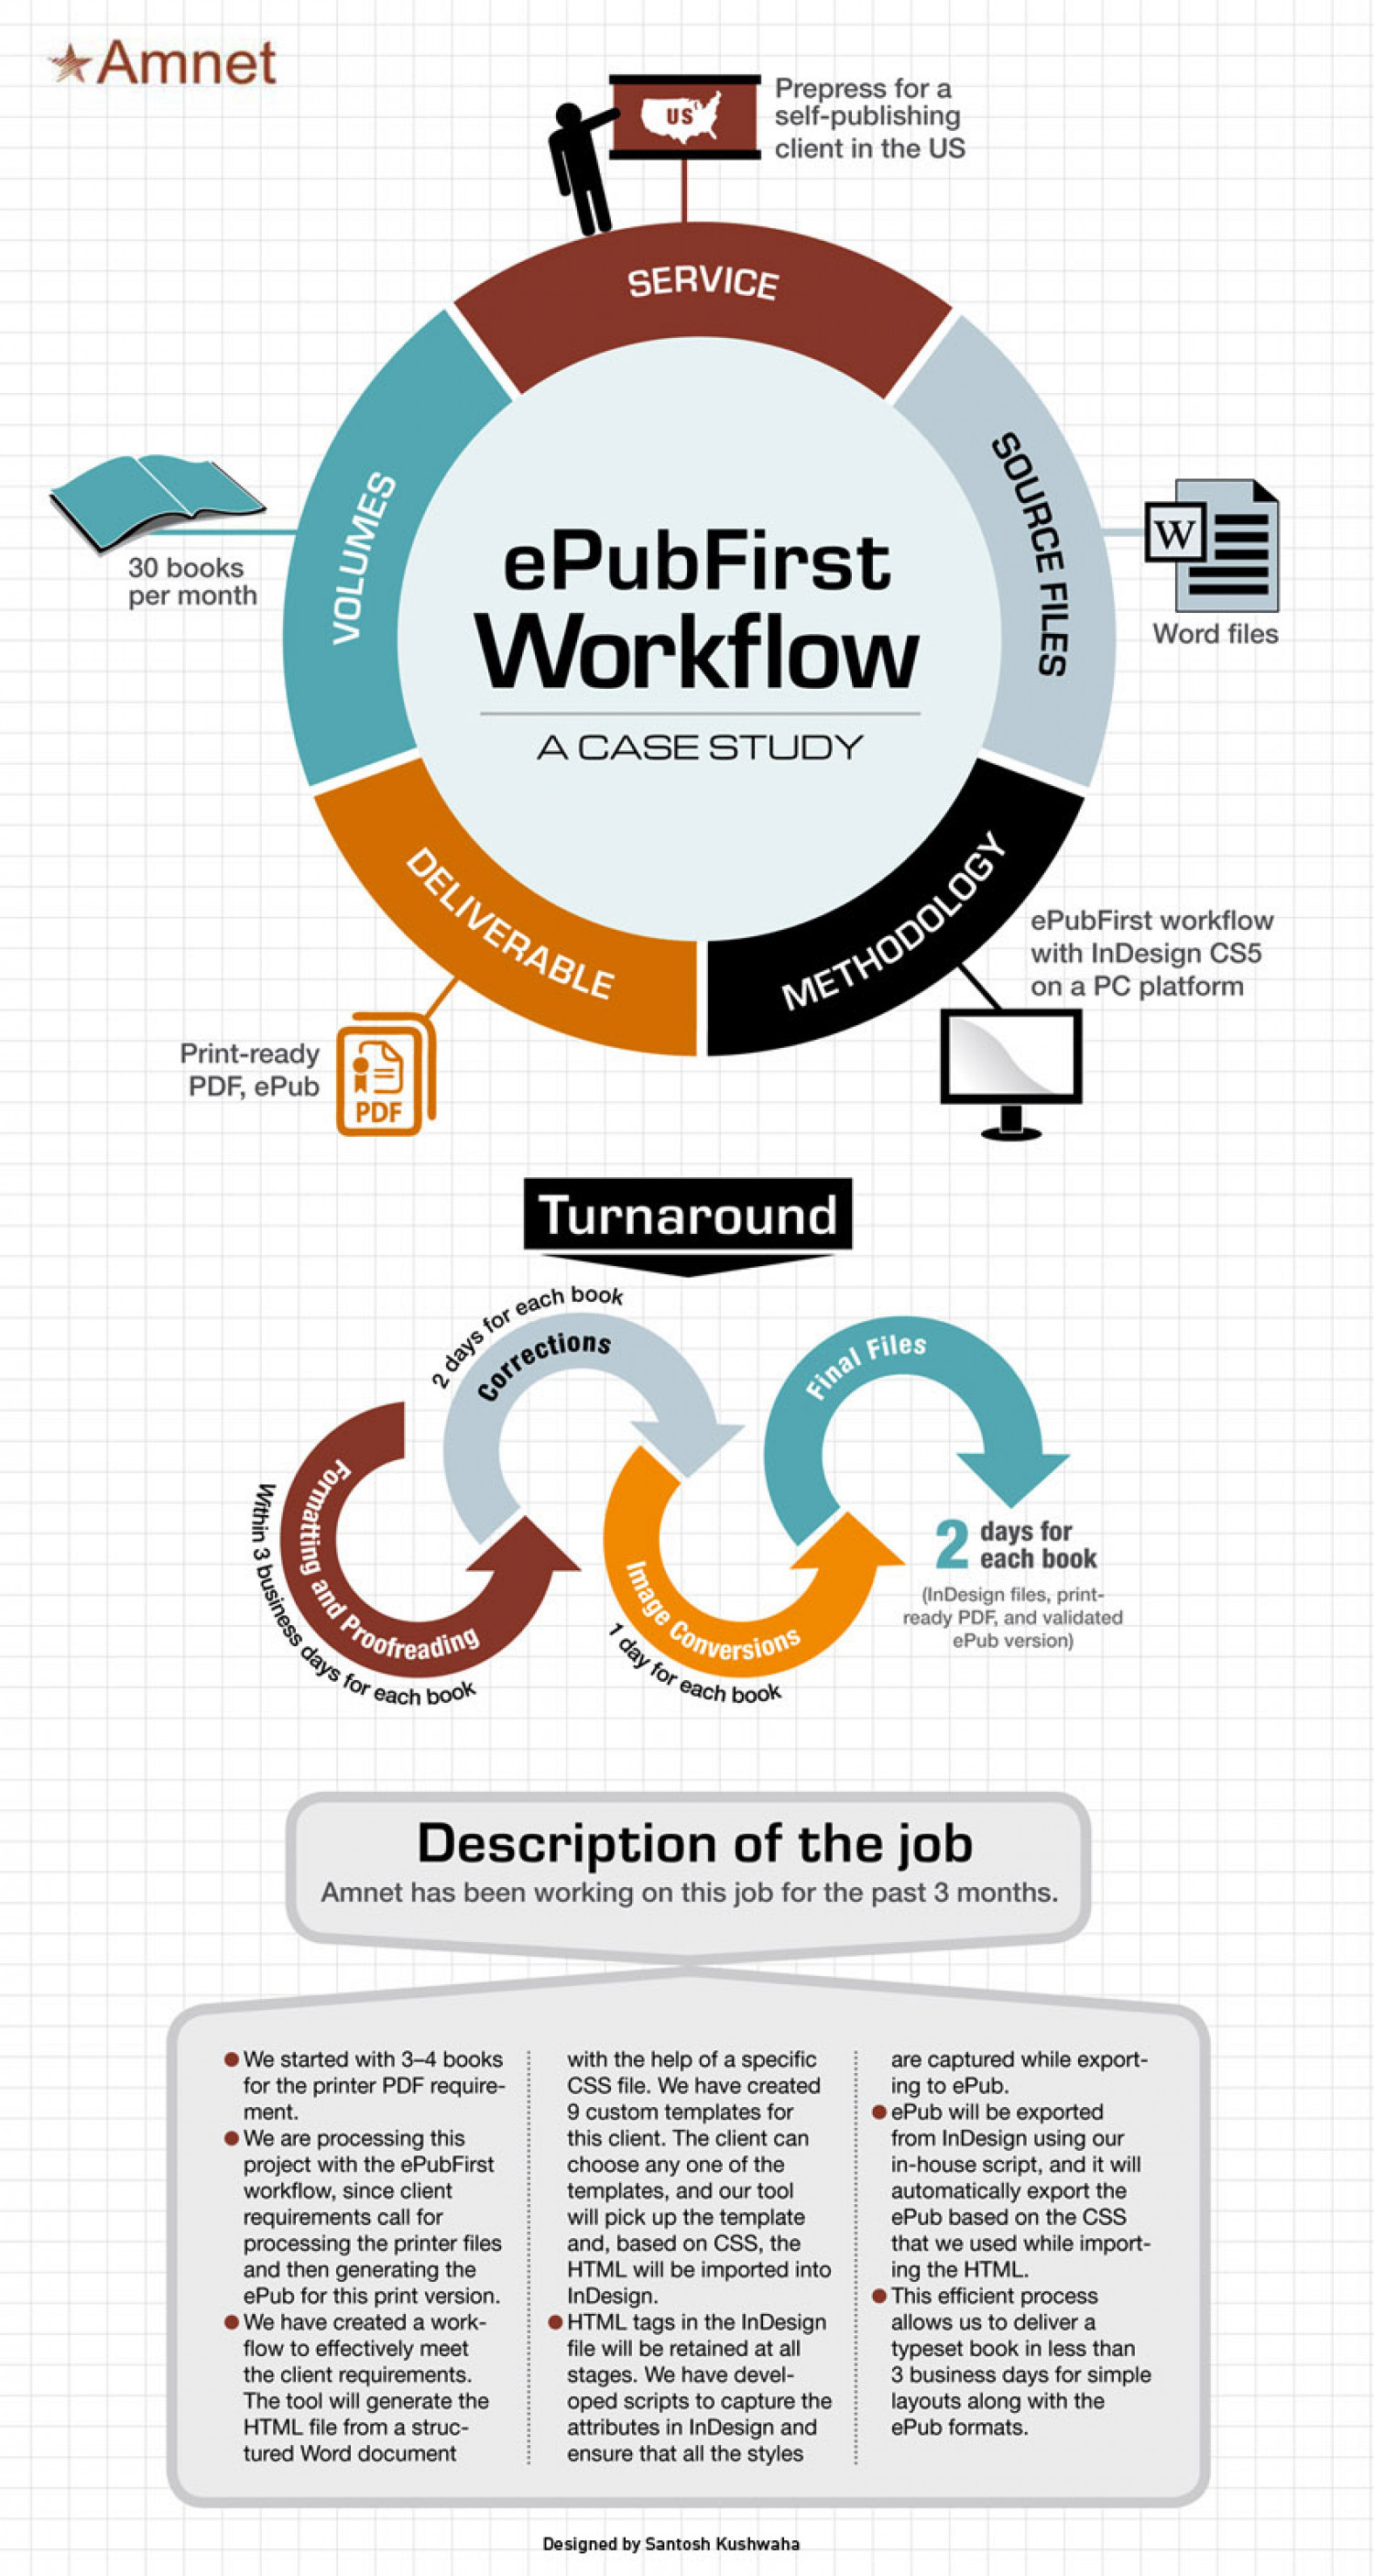 ePubFirst Workflow: a Case study Infographic